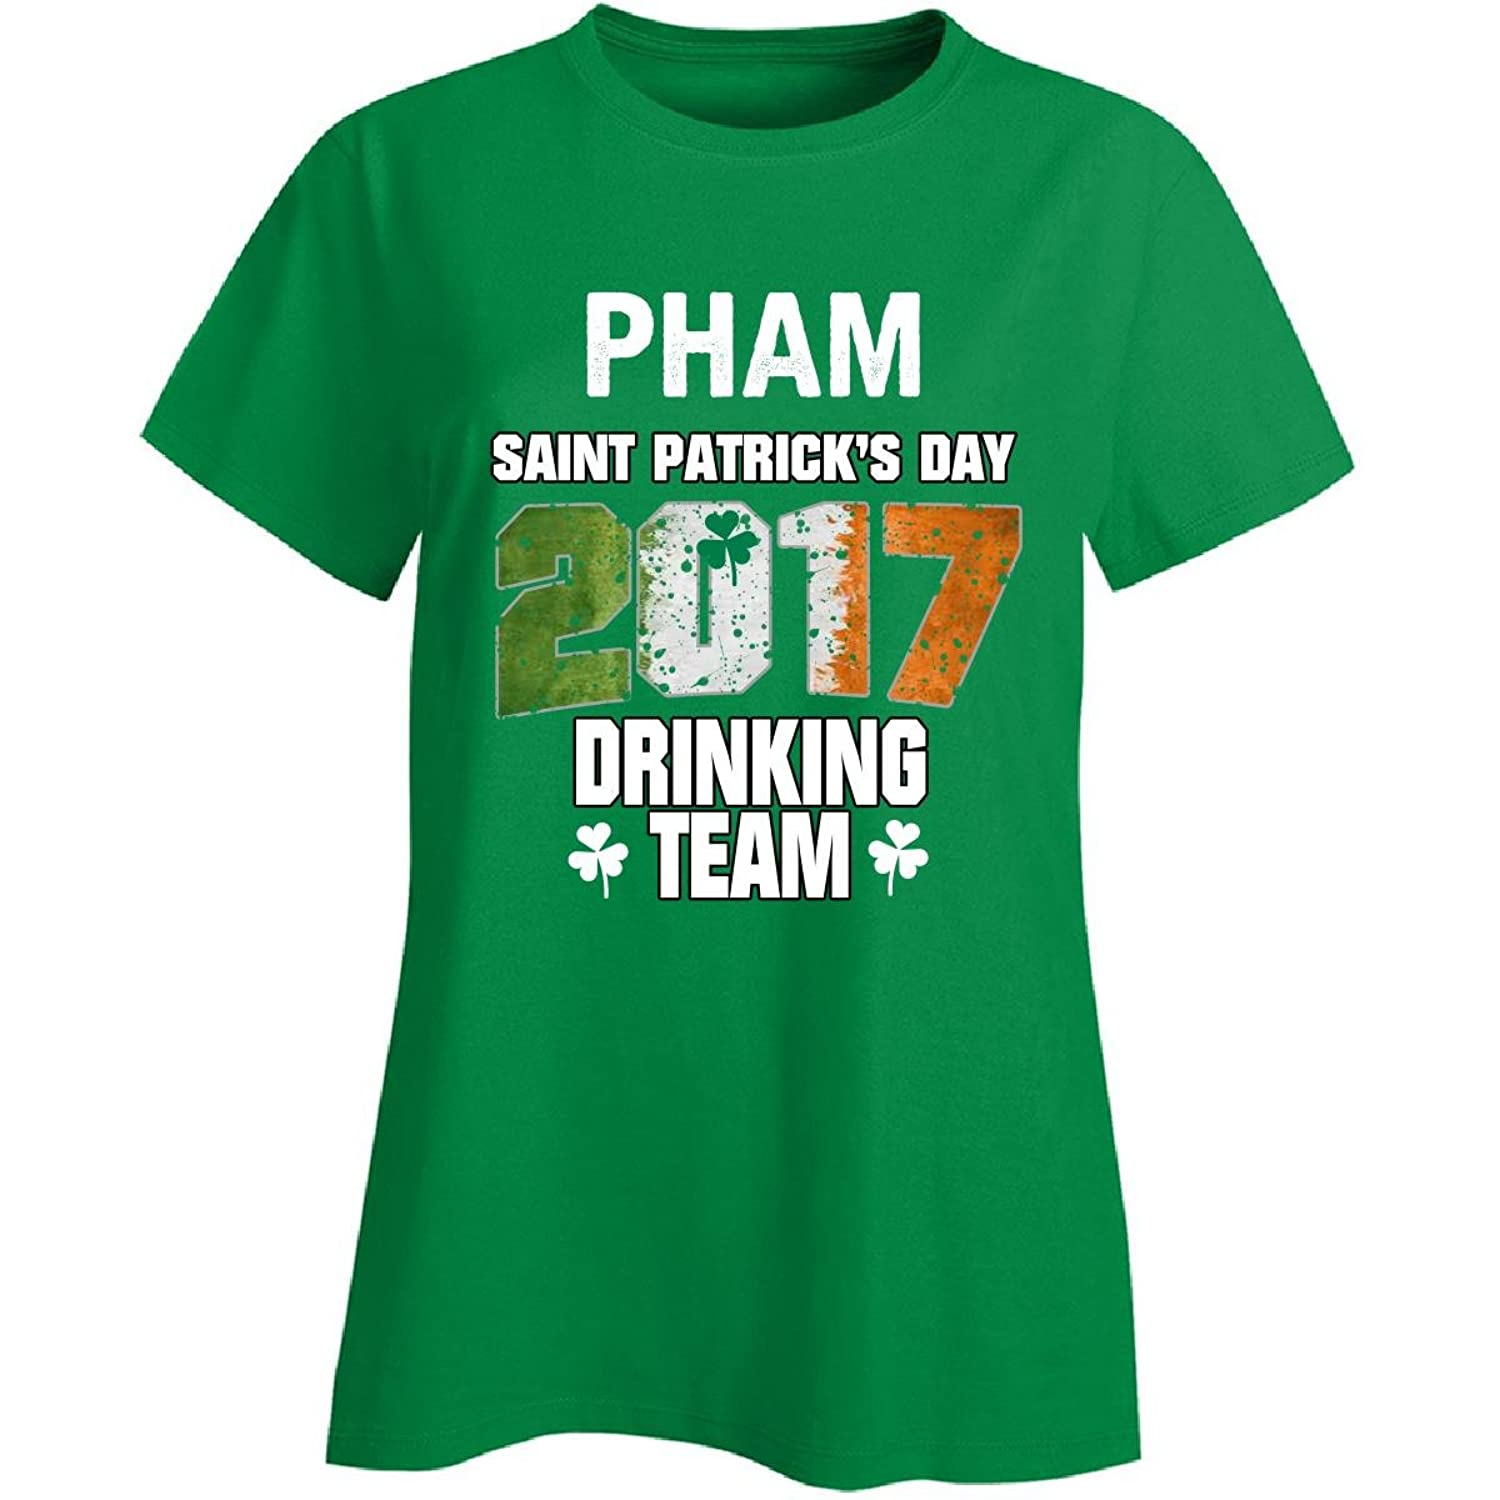 Pham Irish St Patricks Day 2017 Drinking Team - Ladies T-shirt